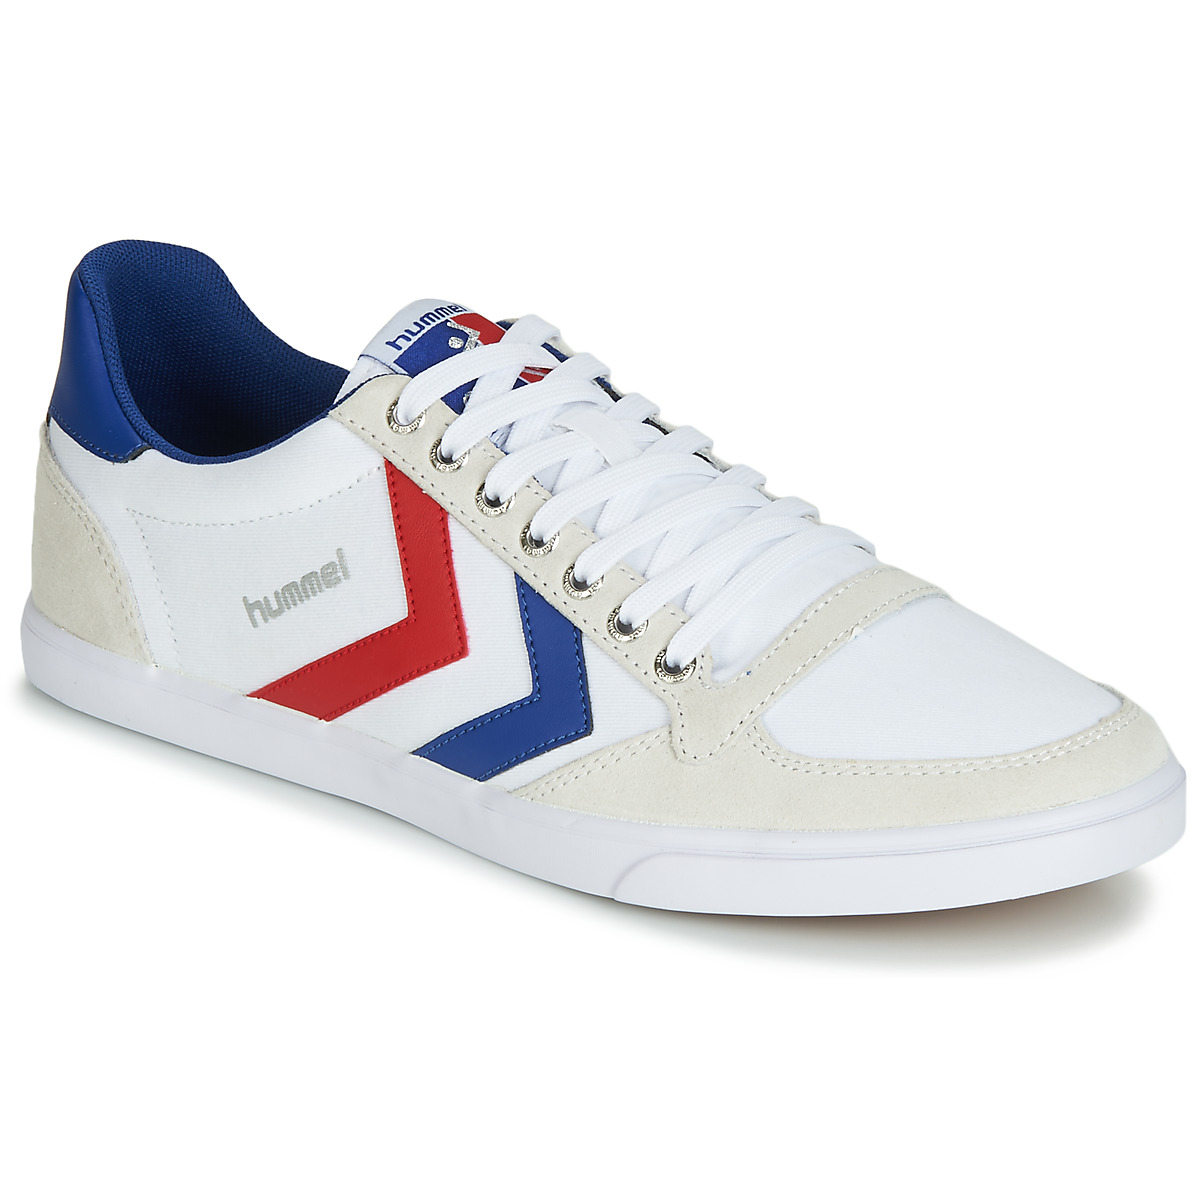 Hummel TEN STAR LOW CANVAS White / Red / Blue